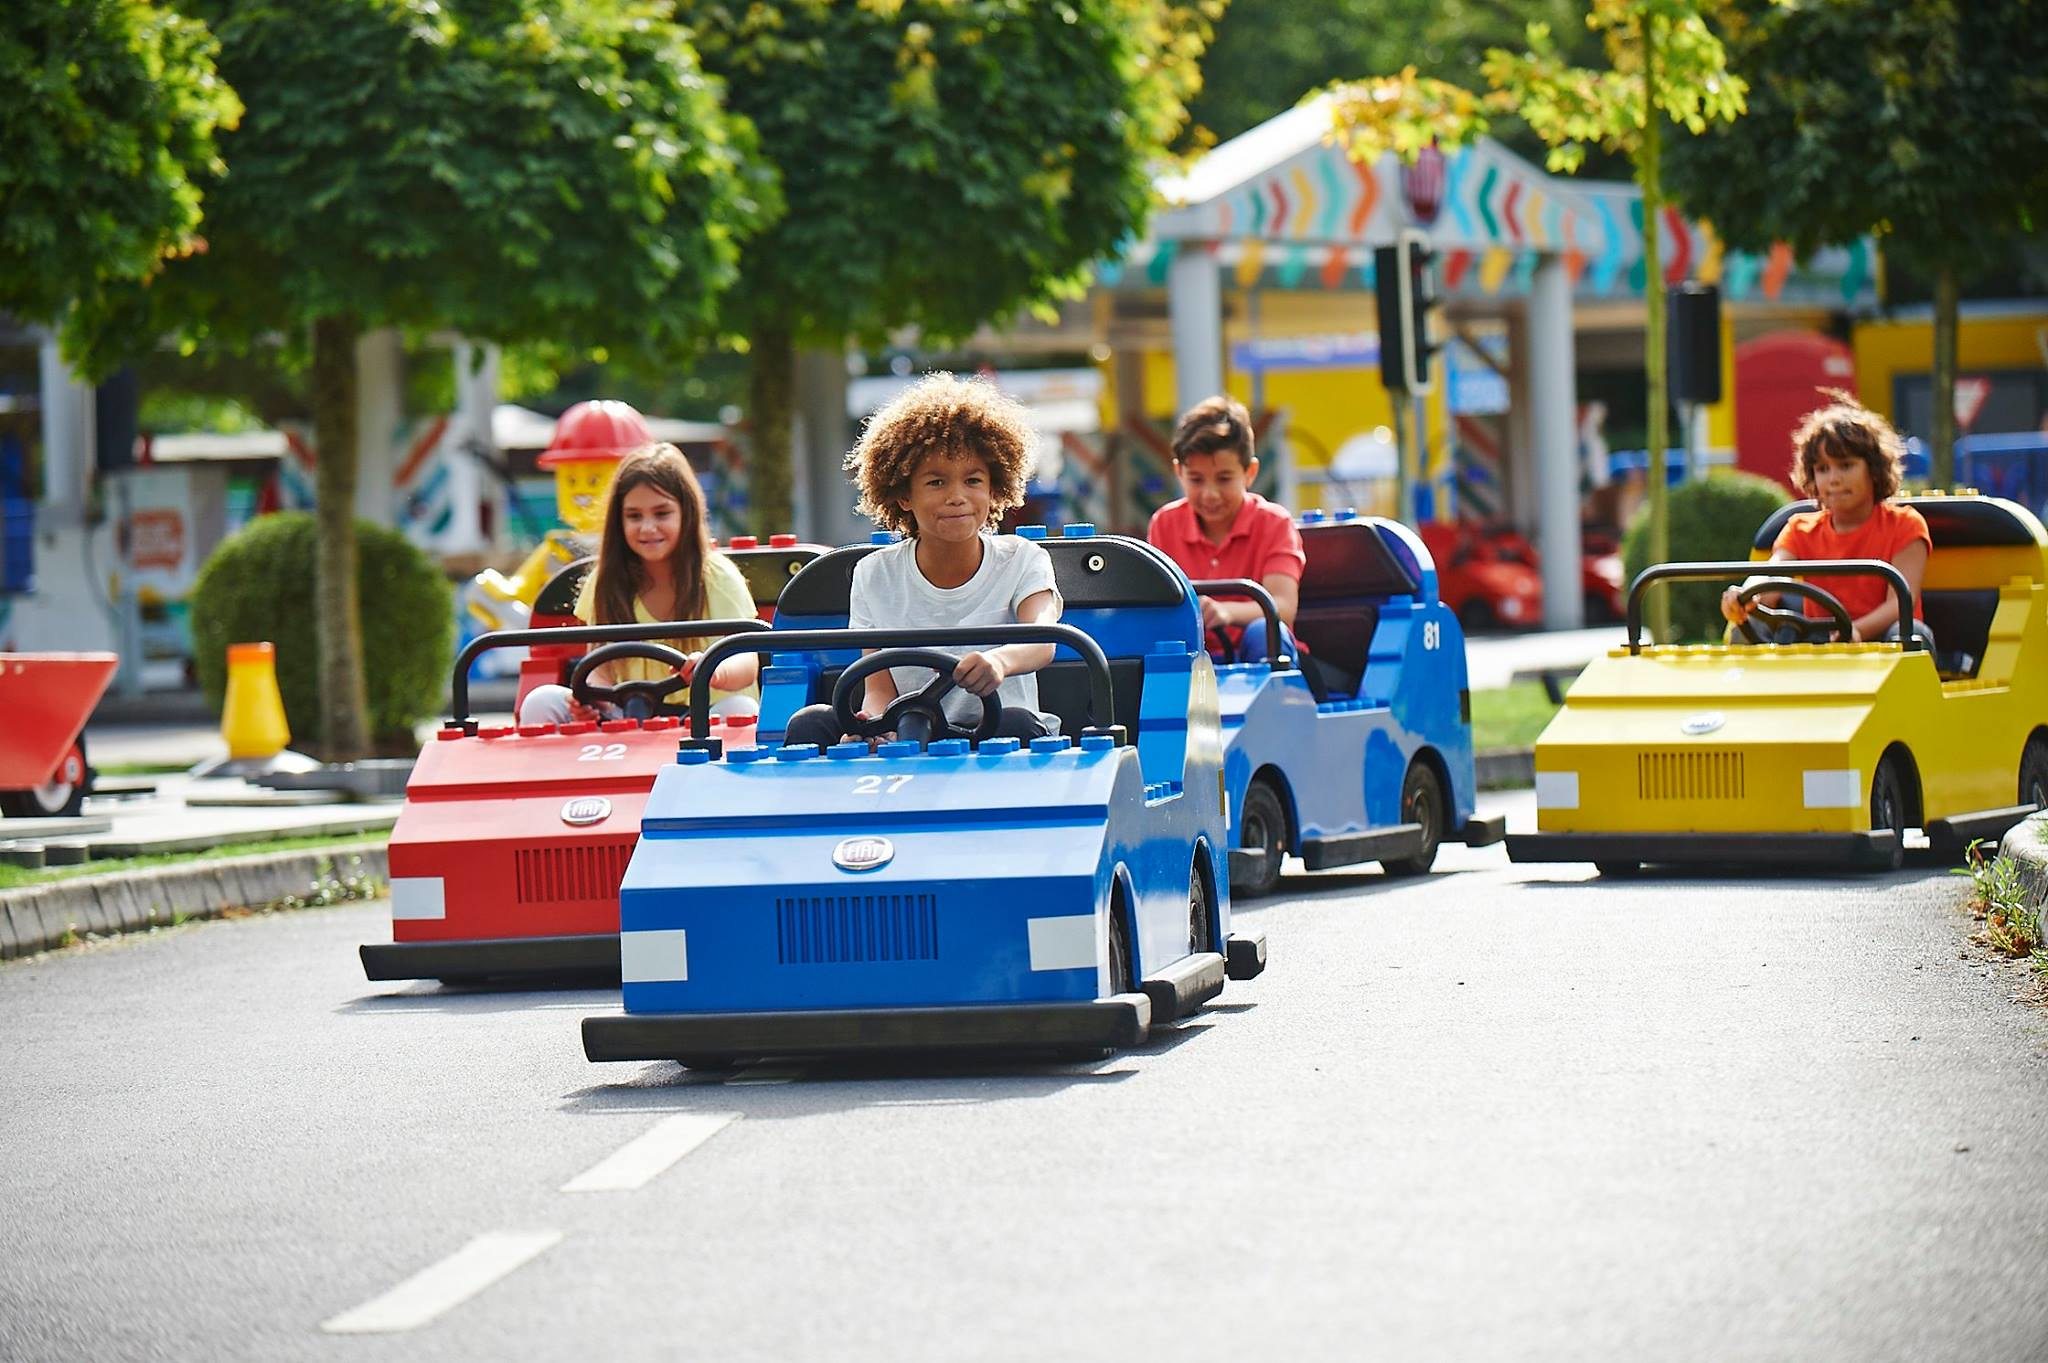 Legoland Windsor race track with kids racing in giant lego cars